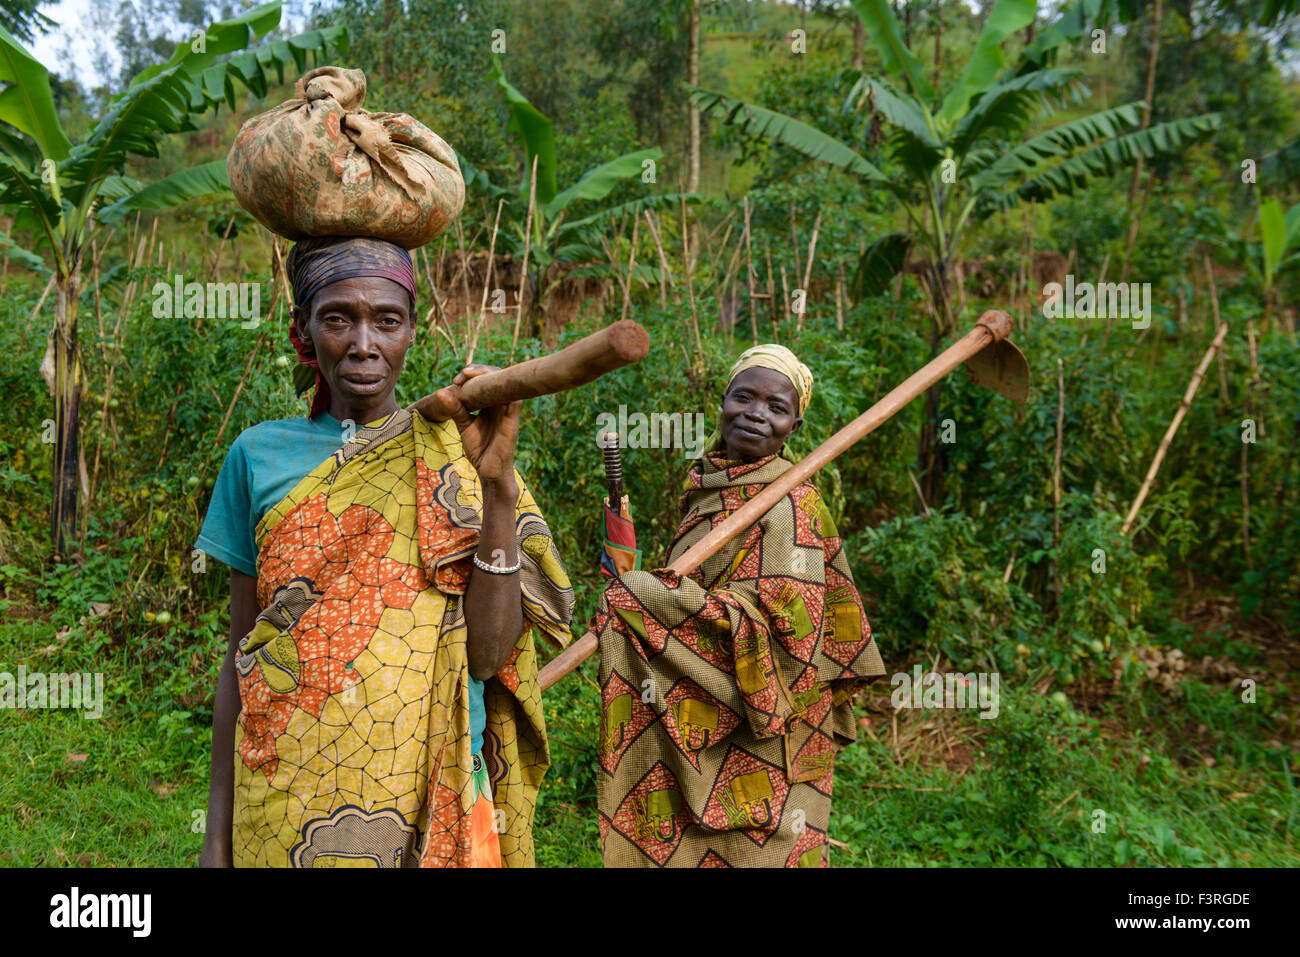 Women With Traditional Clothes Burundi Africa Stock